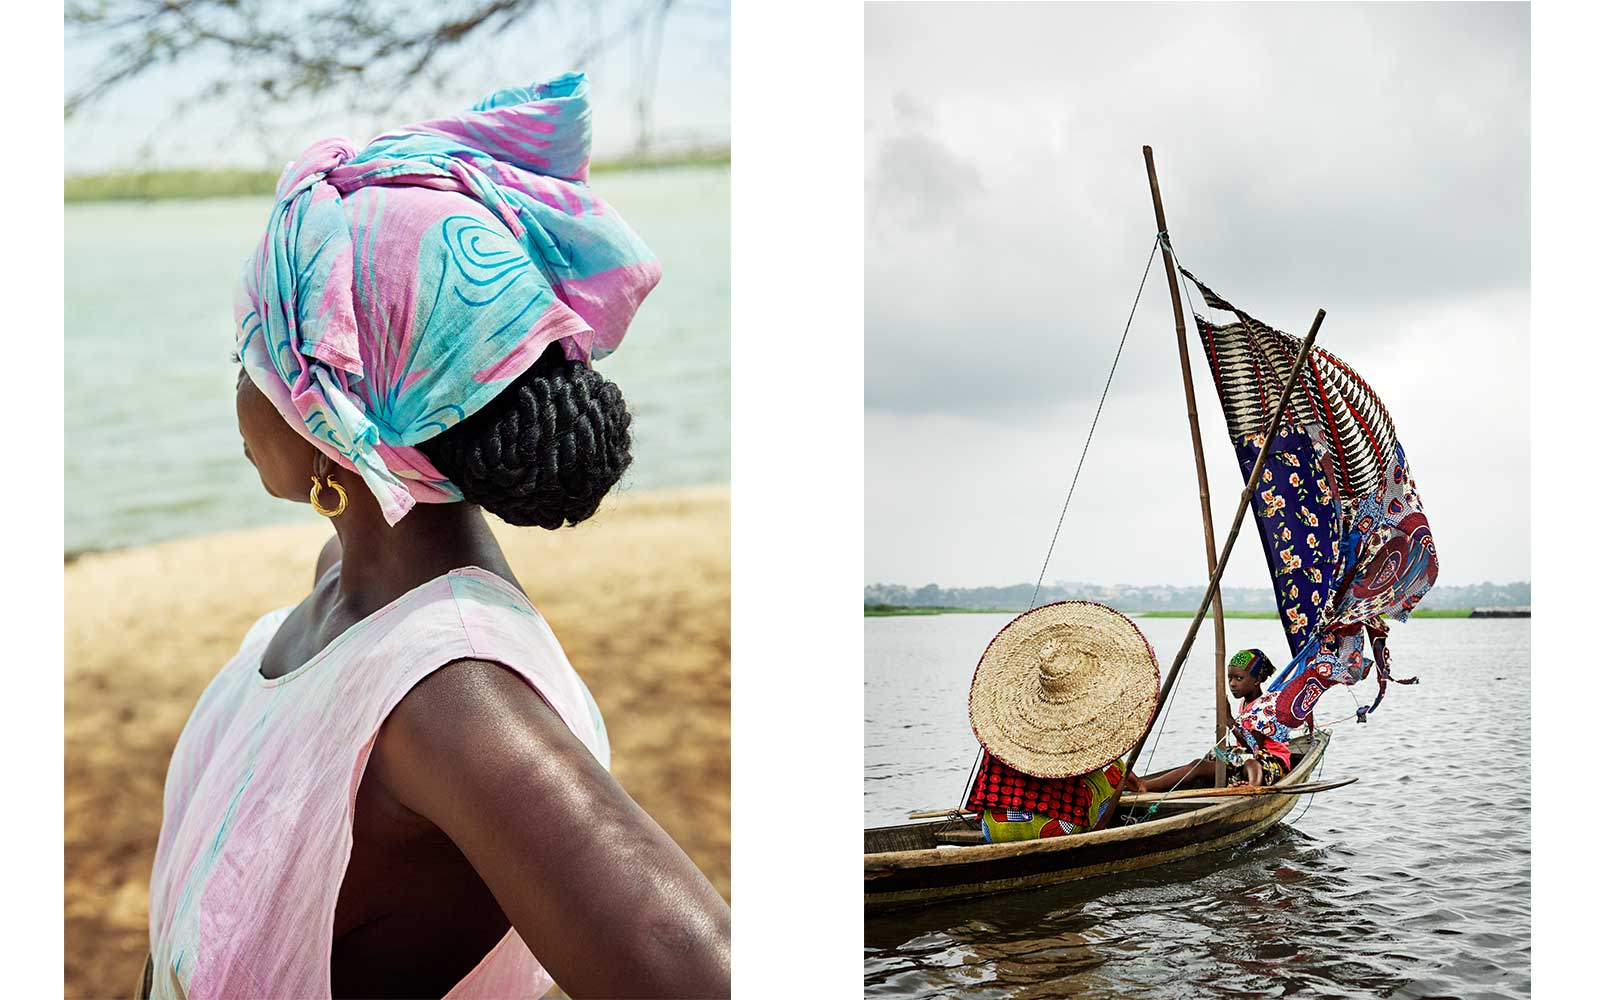 Left: Washing Day, Senegal 2011. Right: Tofinu Girls, Benin 2014. From Circadian Landcape by Jessica Antola